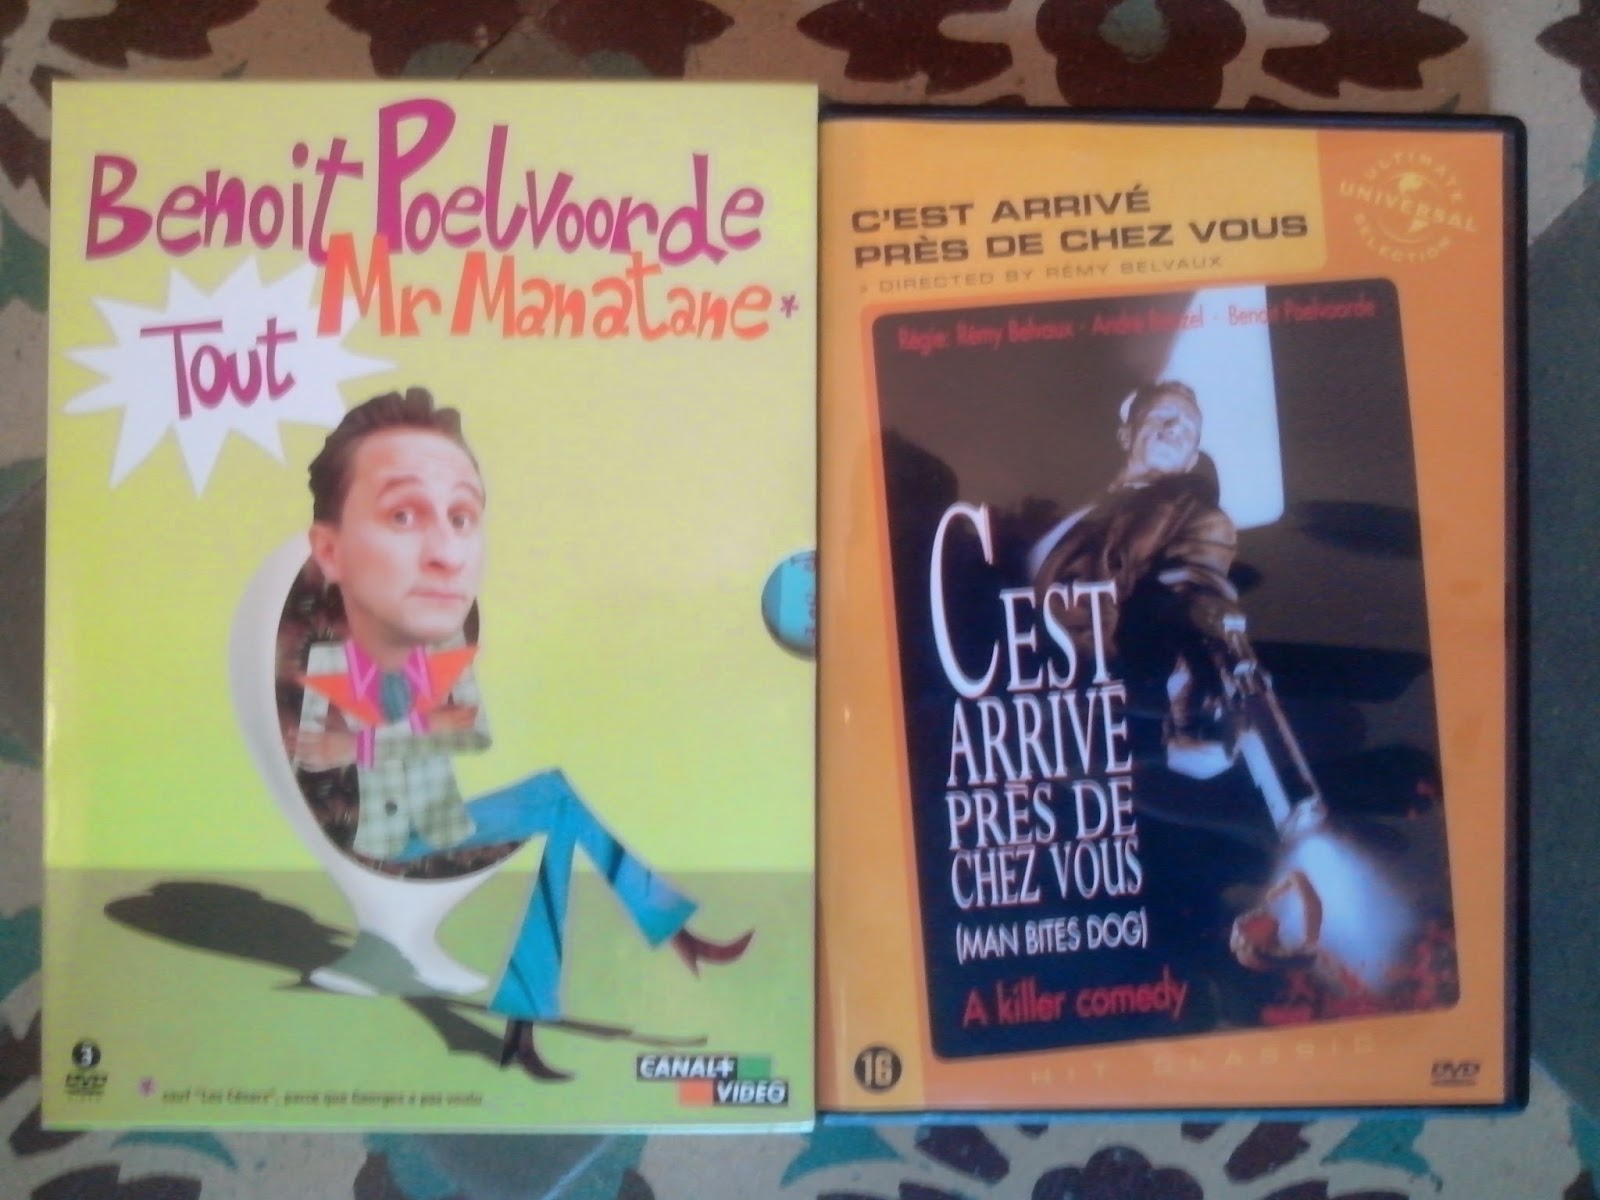 Divers DVD a vendre Poelvoorde